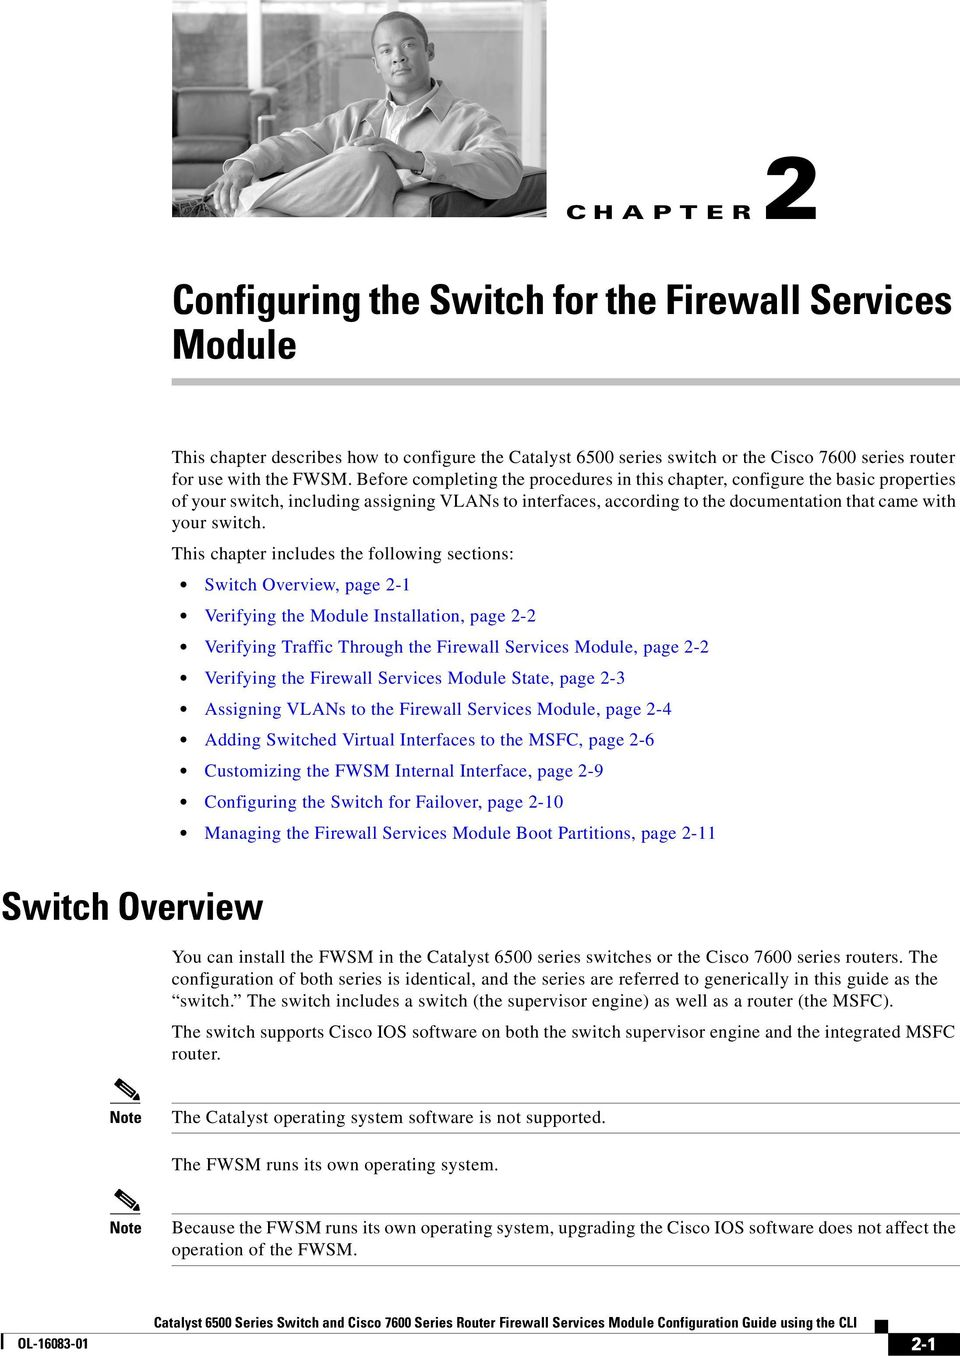 Configuring The Switch For Firewall Services Module Pdf Note Ports On That Are Connected To Asa Must Be In This Chapter Includes Following Sections Overview Page 2 1 Verifying